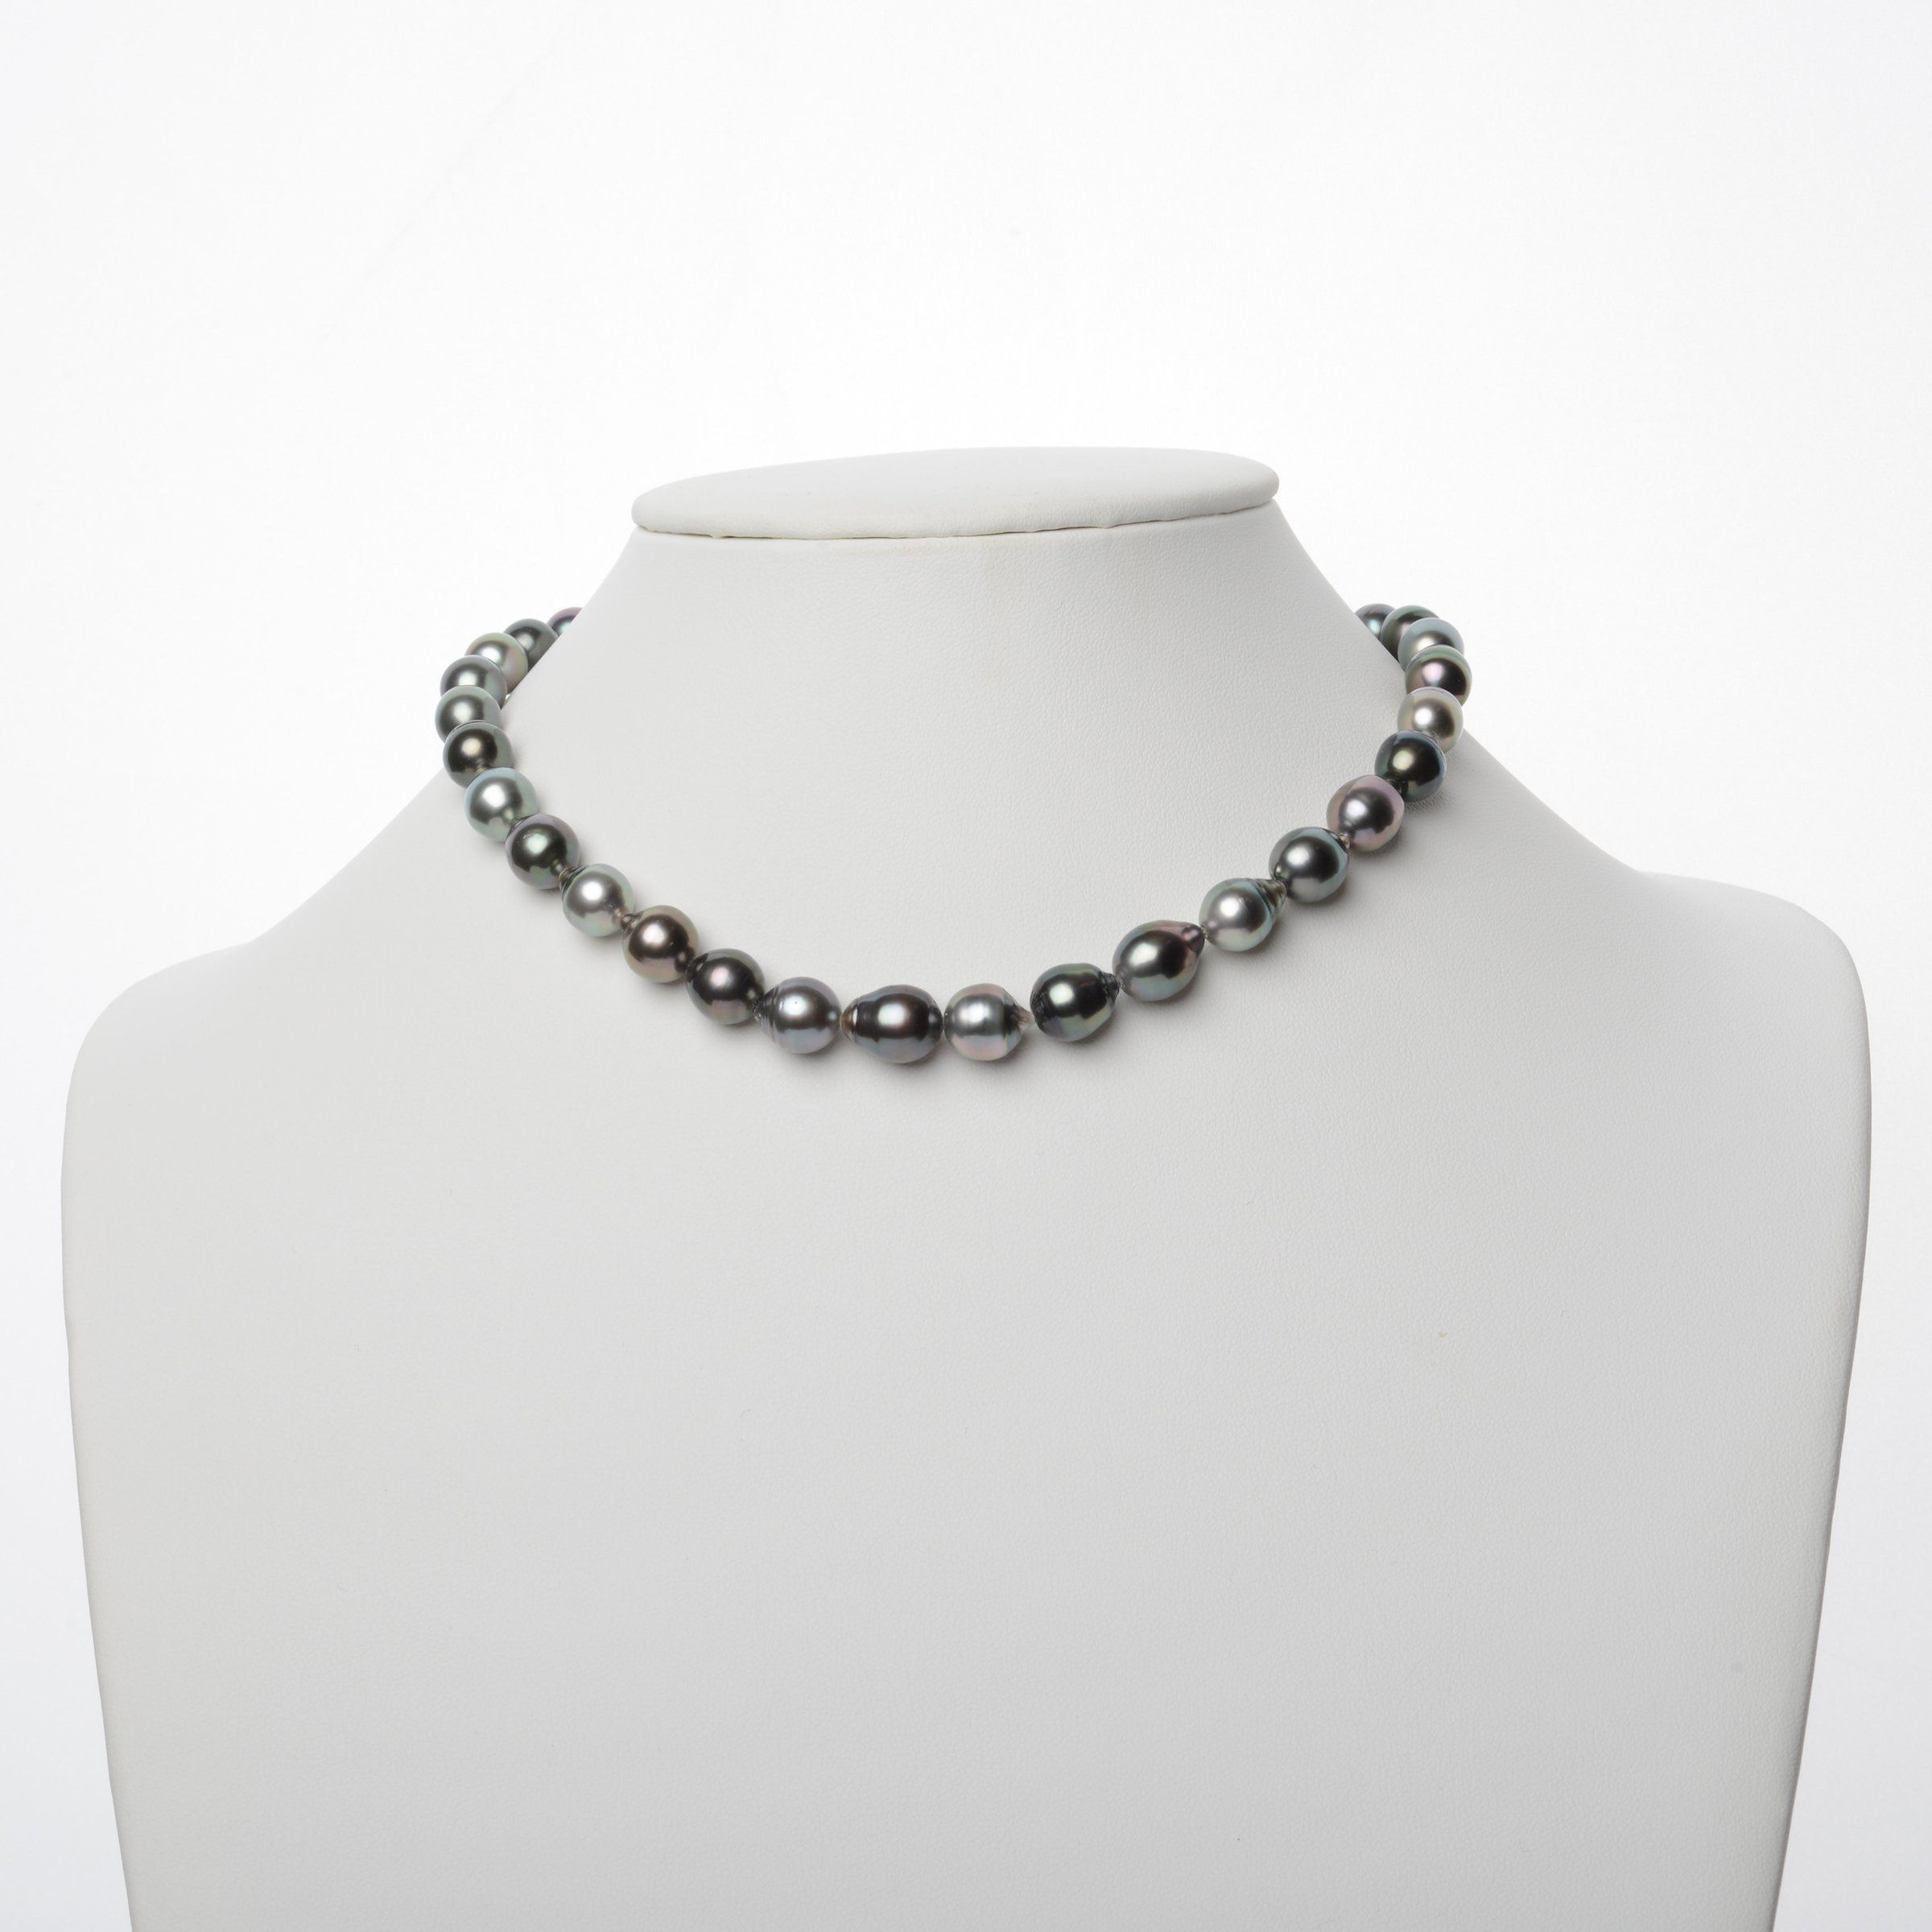 8.0-10.4 mm AAA Tahitian Baroque Pearl Necklace